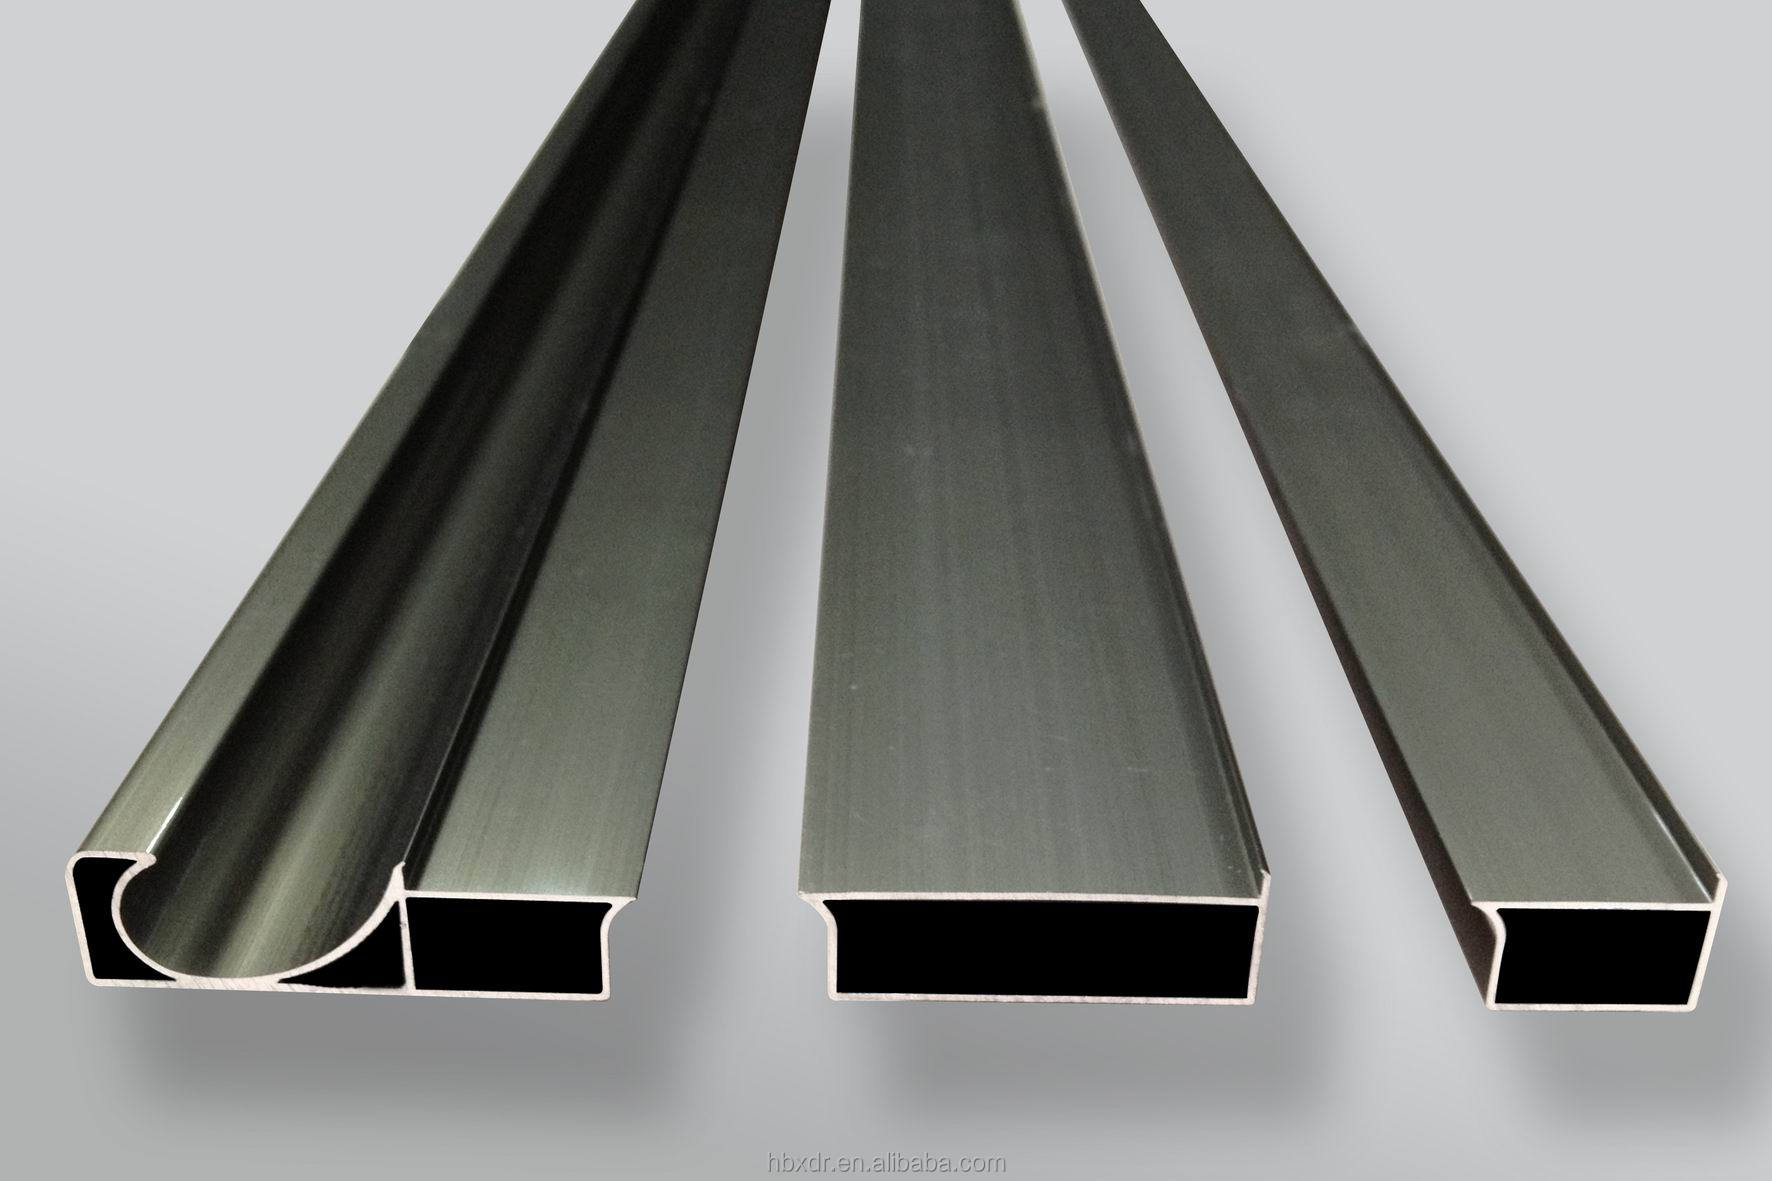 made in China ! aluminum extrusion profiles form china supplier